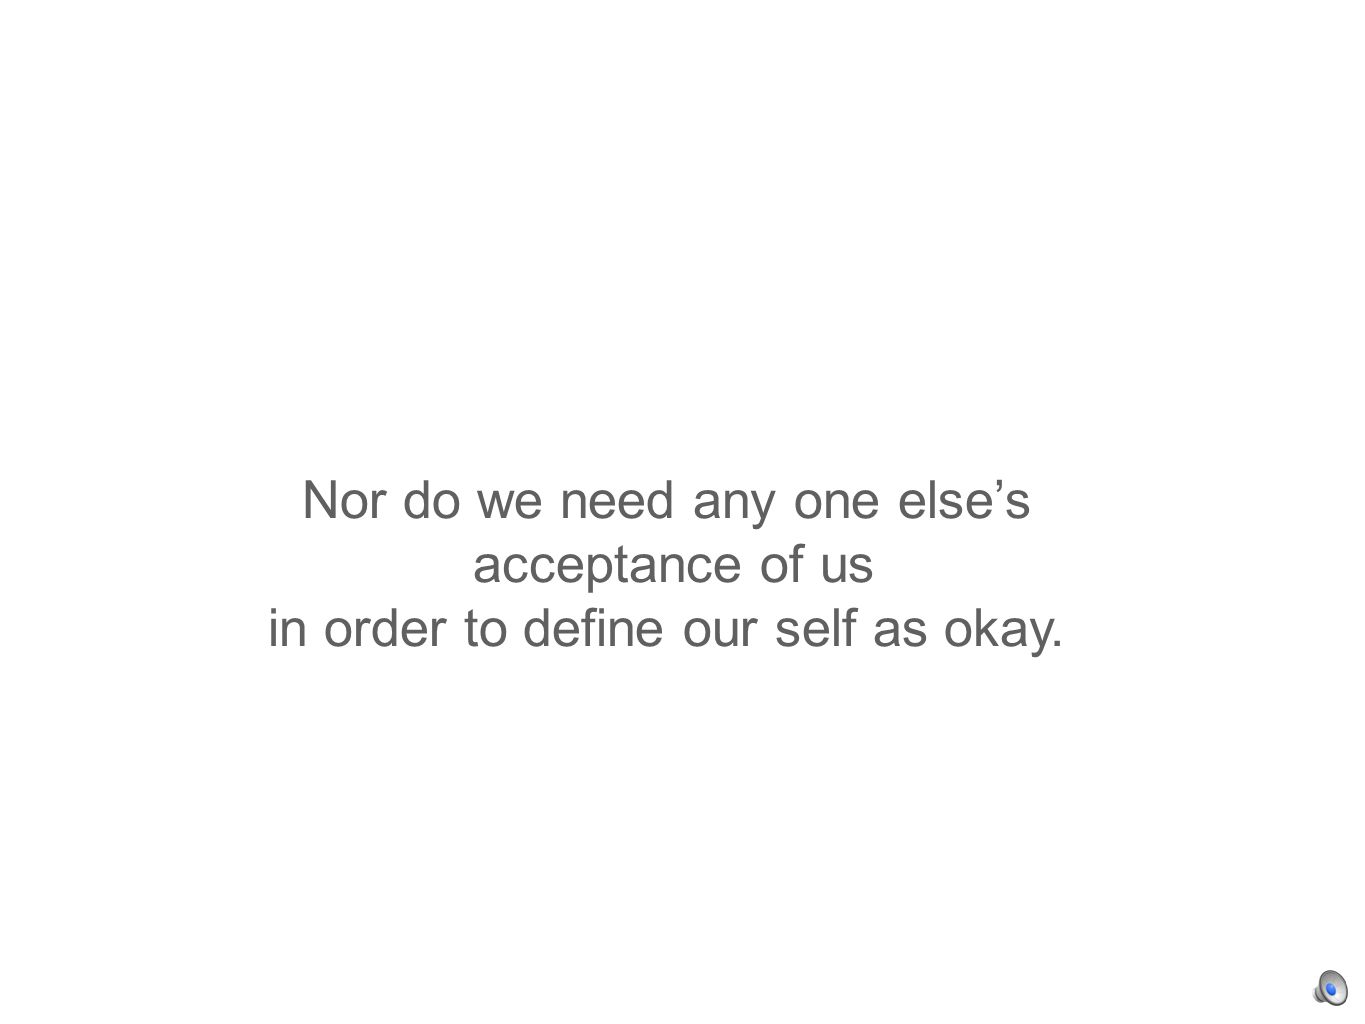 Nor do we need any one elses acceptance of us in order to define our self as okay.